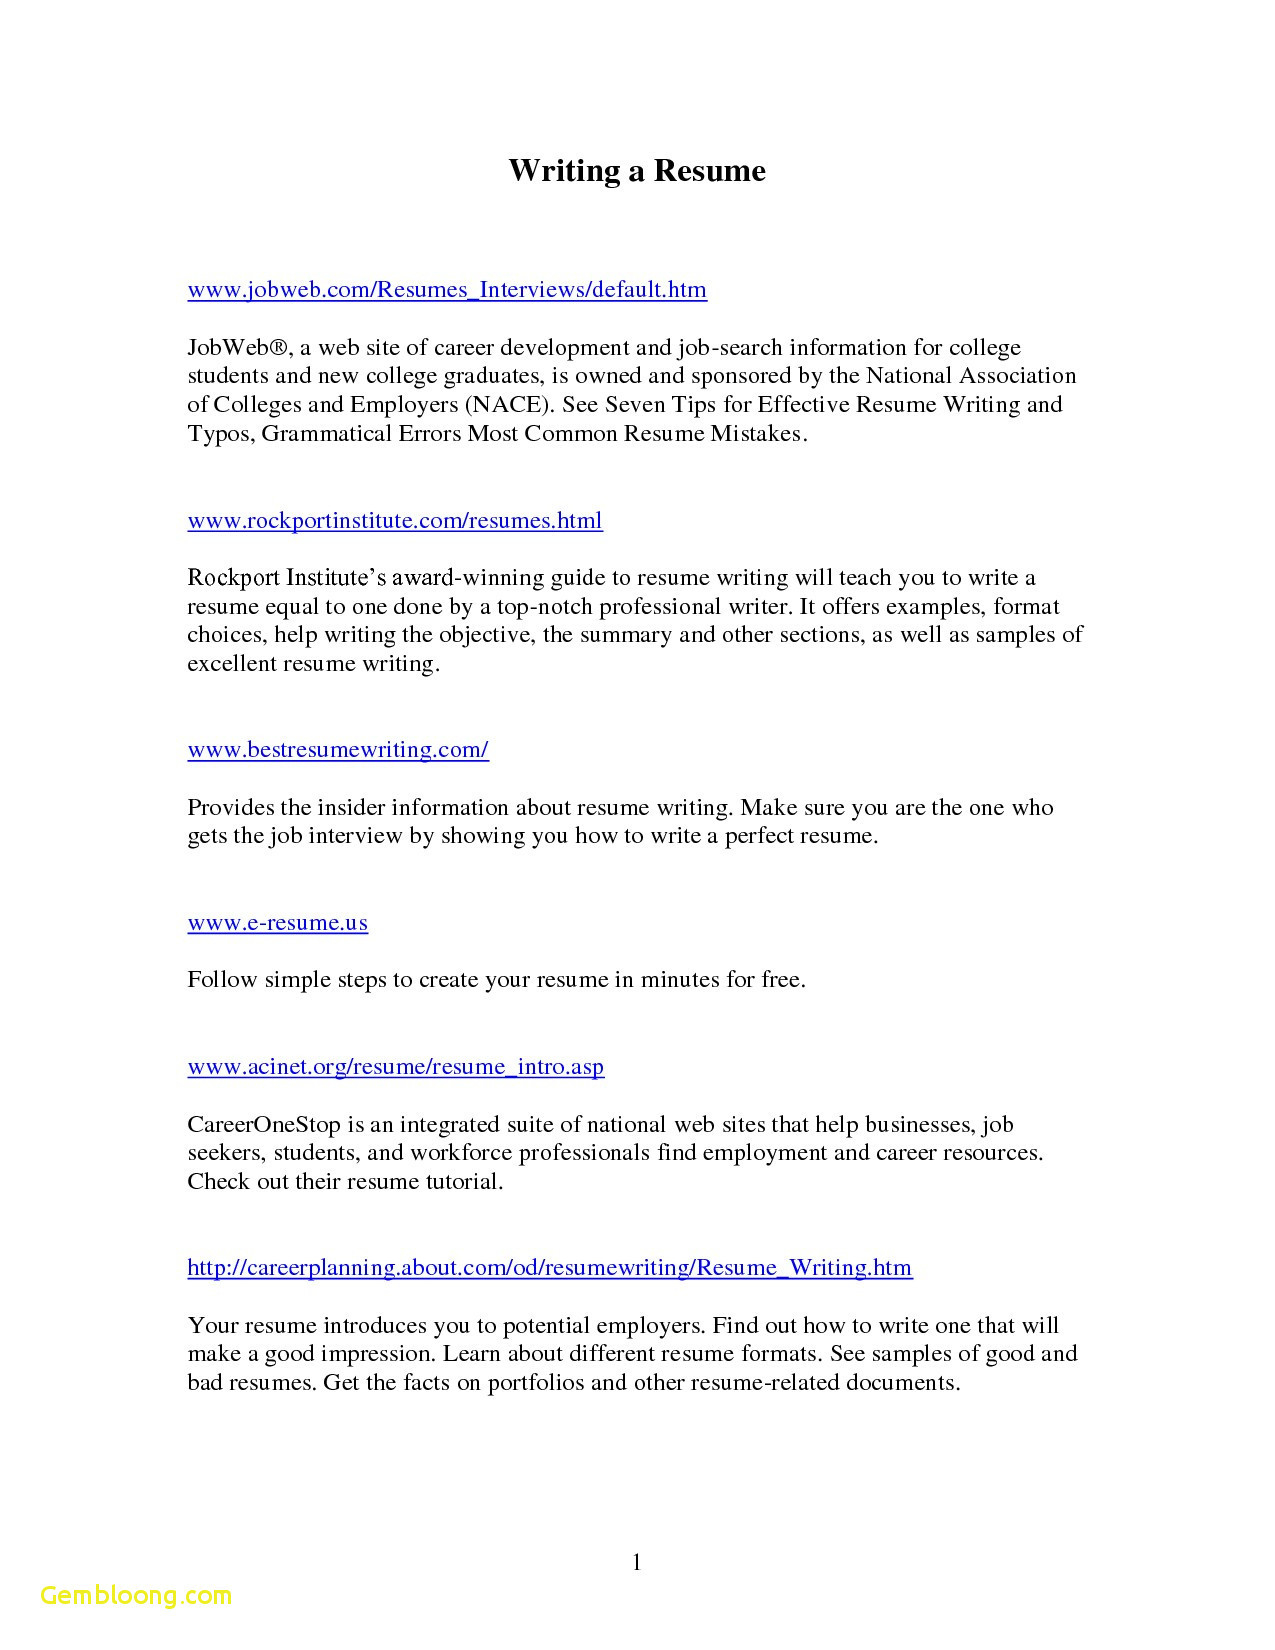 Clinical Site Selection Letter Template - Prehensive Resume Template Updated Wordpad Resume Template